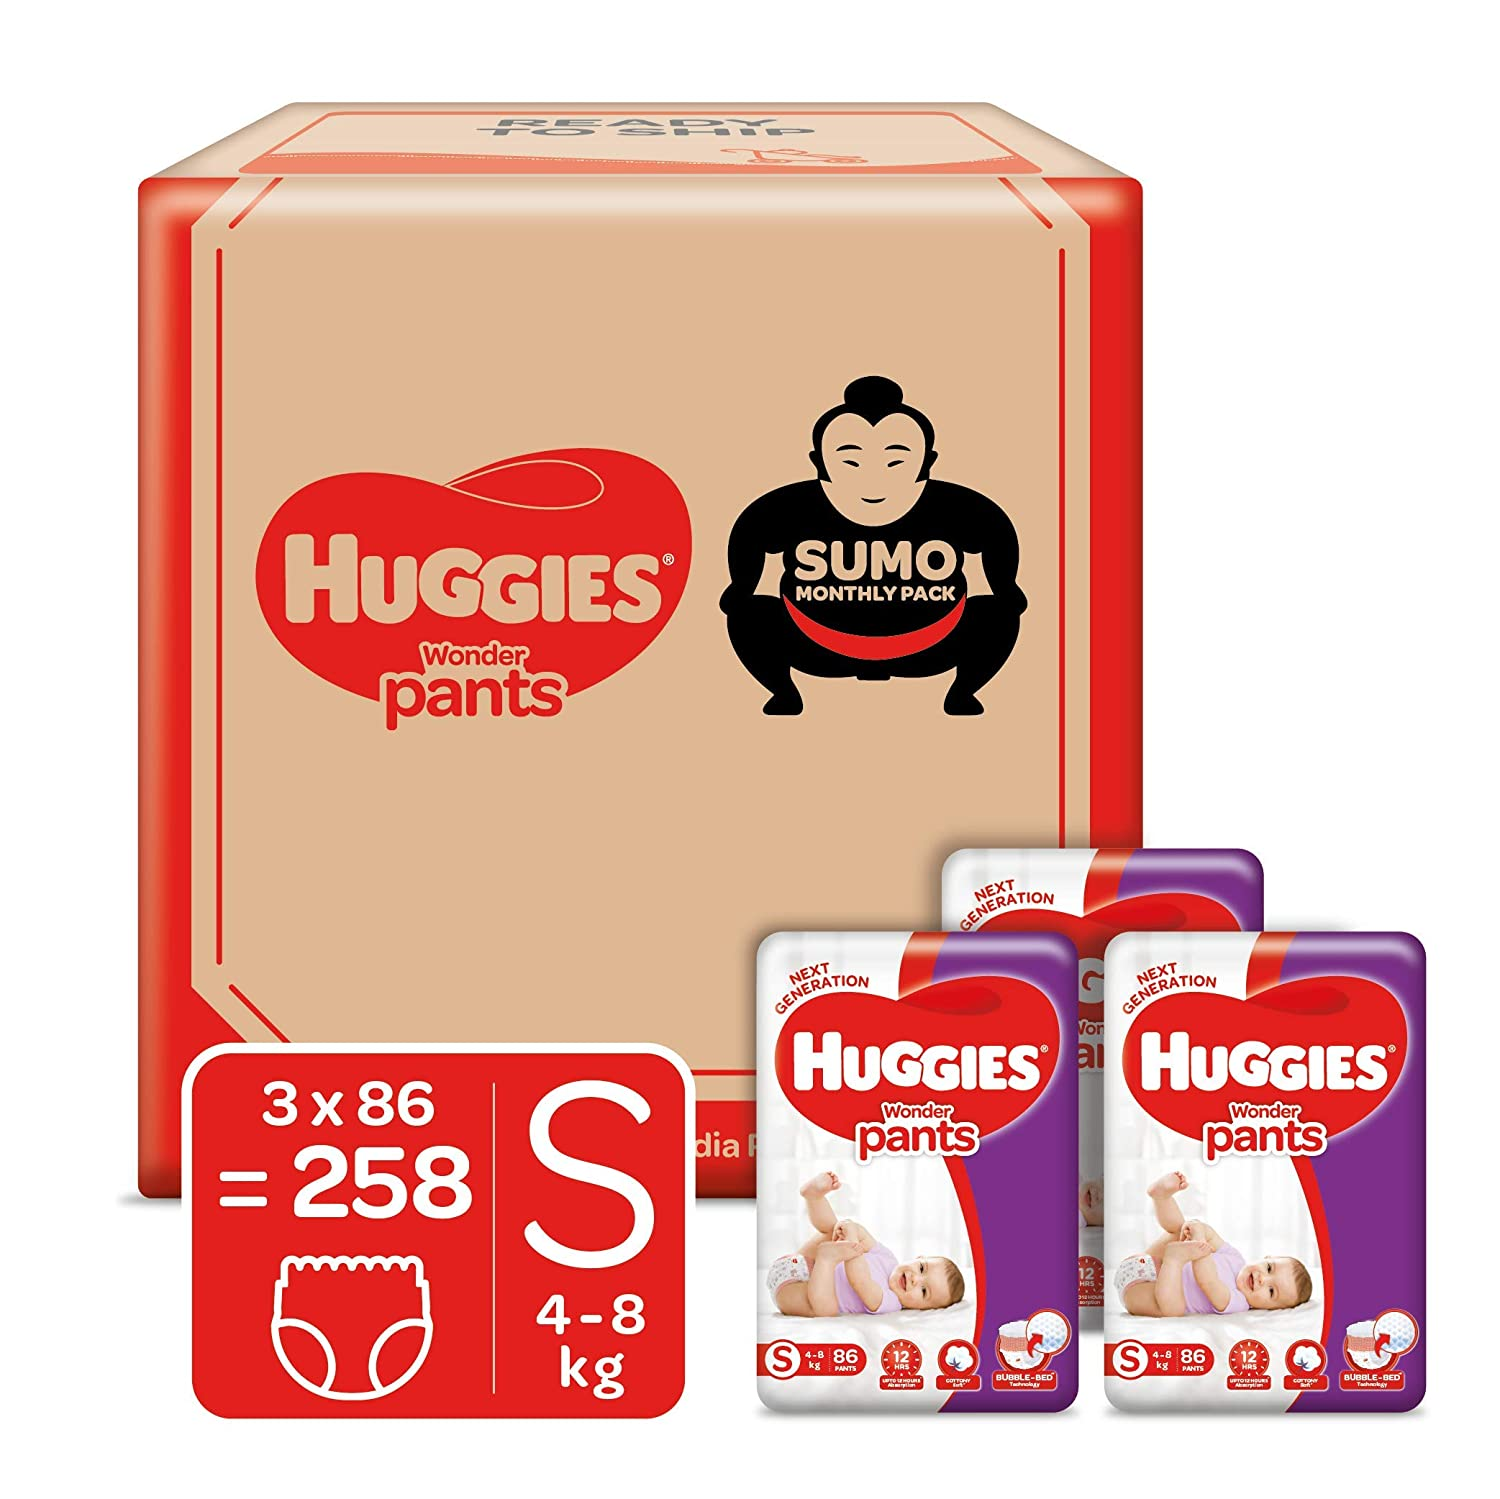 Huggies Wonder Pants, Sumo Monthly Box Pack Diapers, Small Size, 258 Count